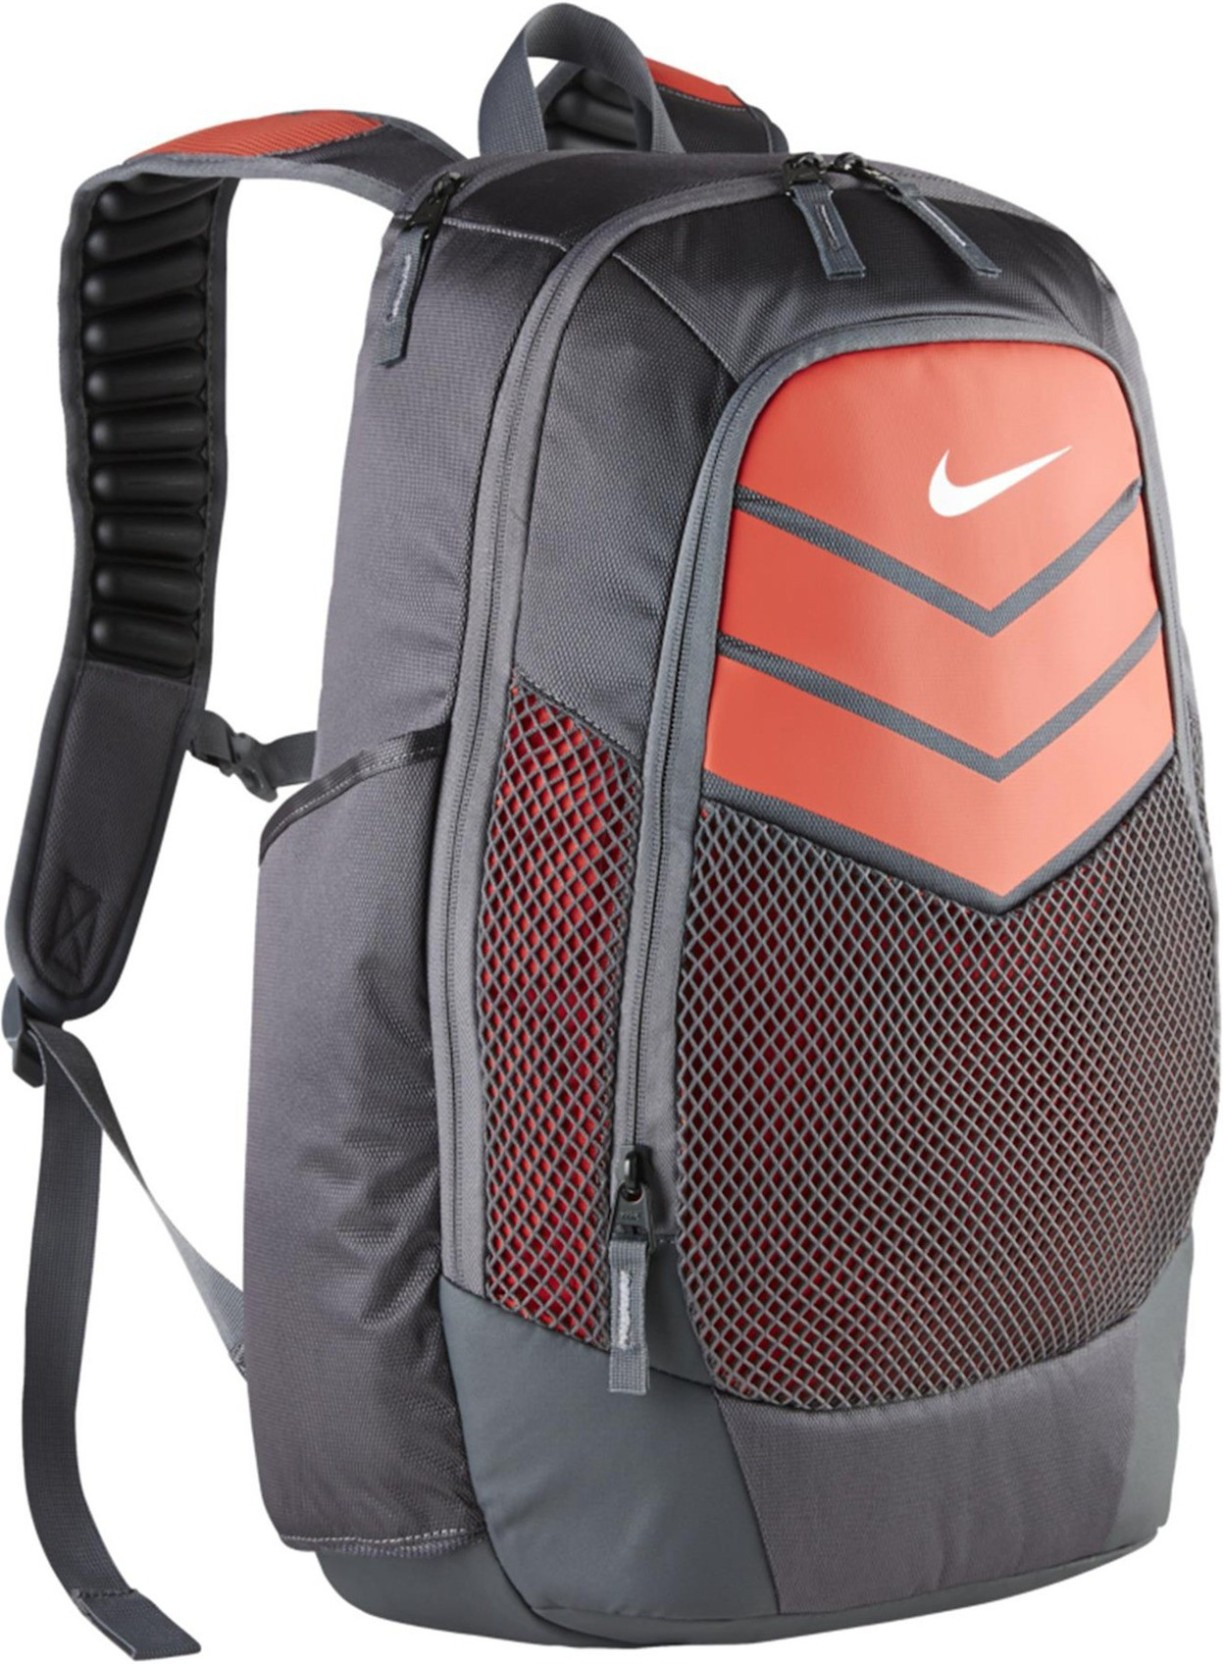 Nike Vapor Power Backpack Waterproof- Fenix Toulouse Handball 395641c41995d